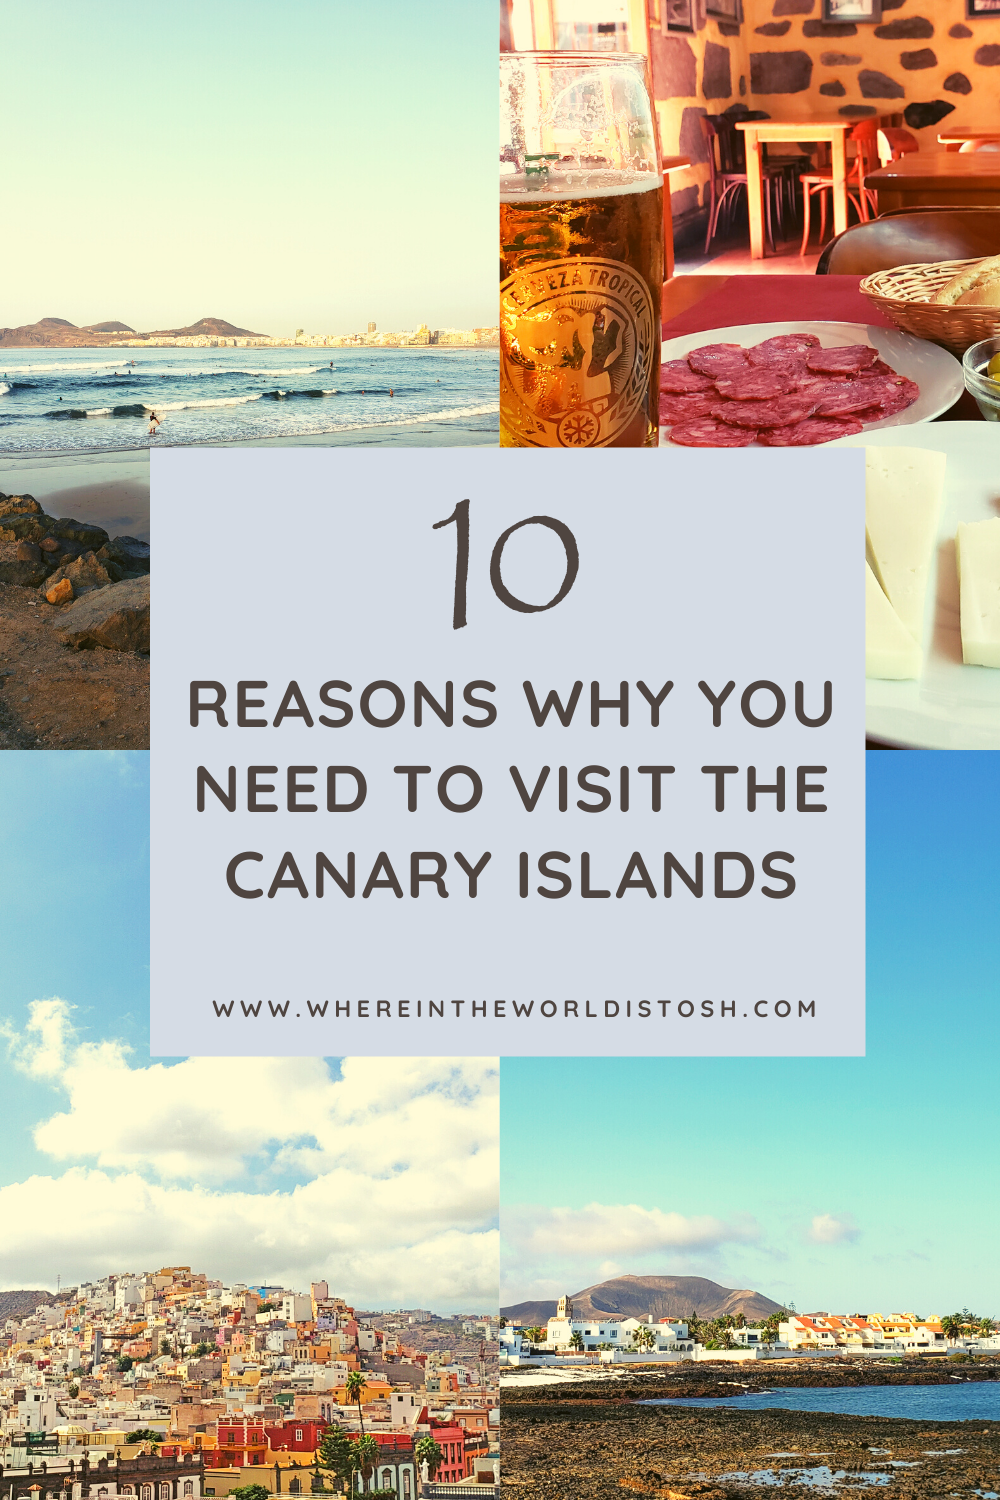 10 Reasons Why You Need To Visit The Canary Islands